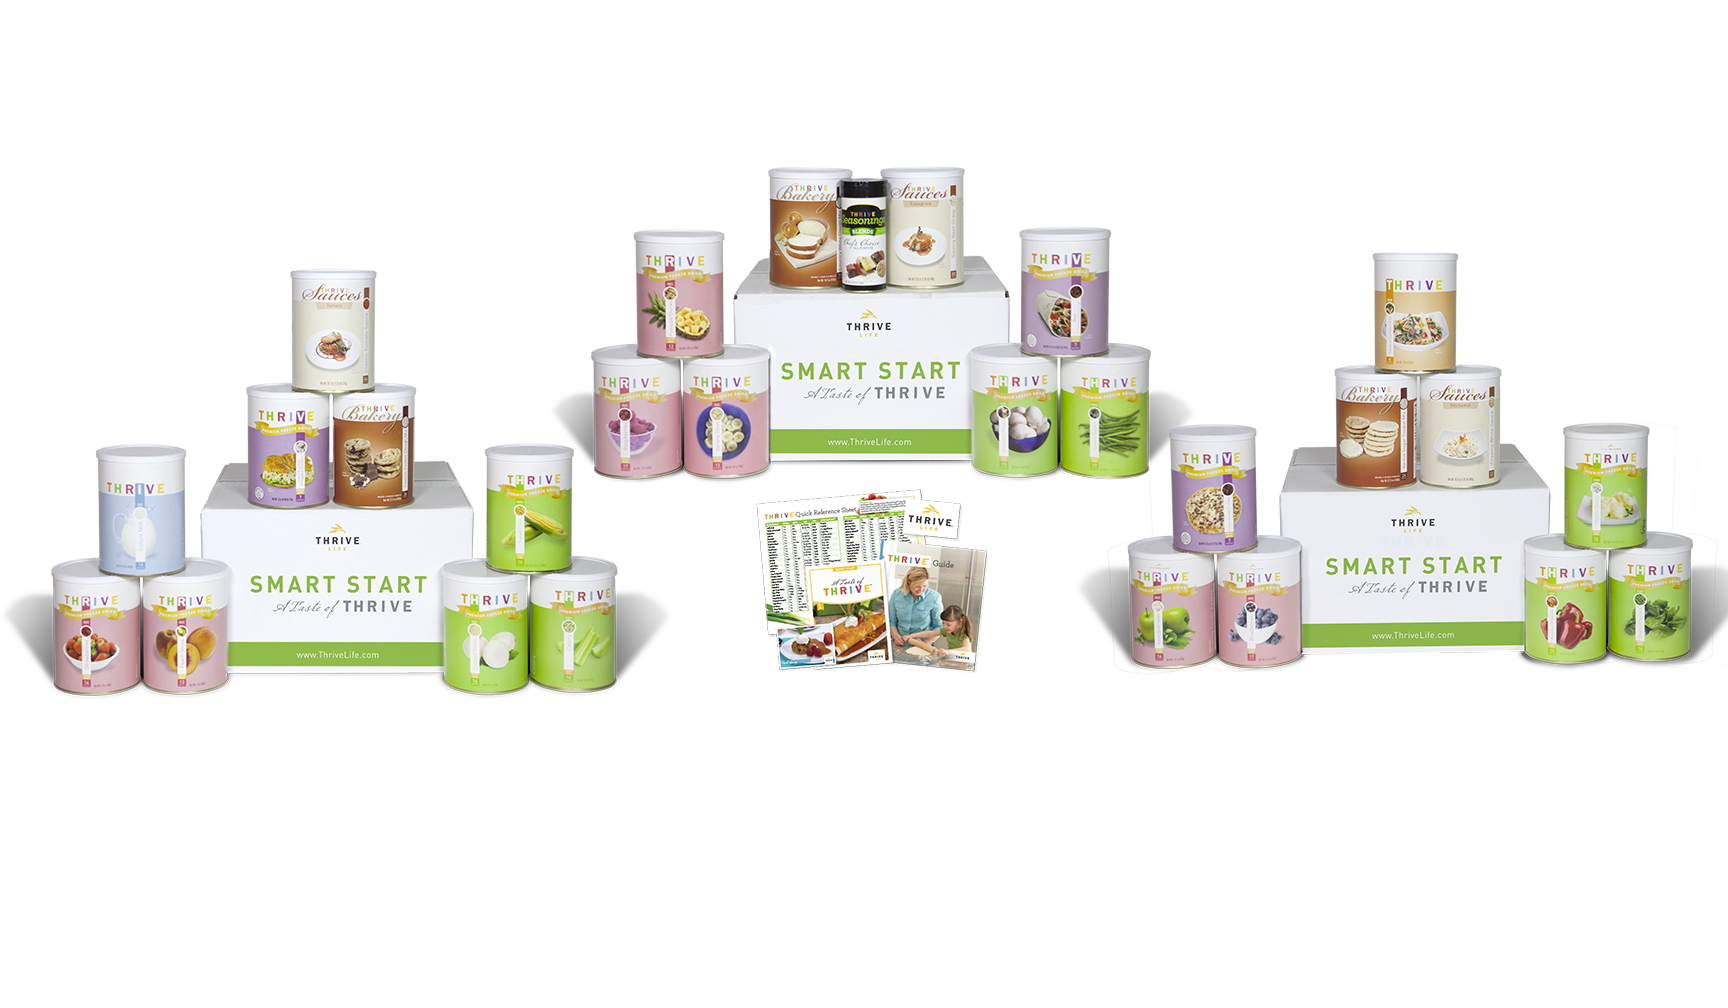 Smart Start: A Taste of THRIVE